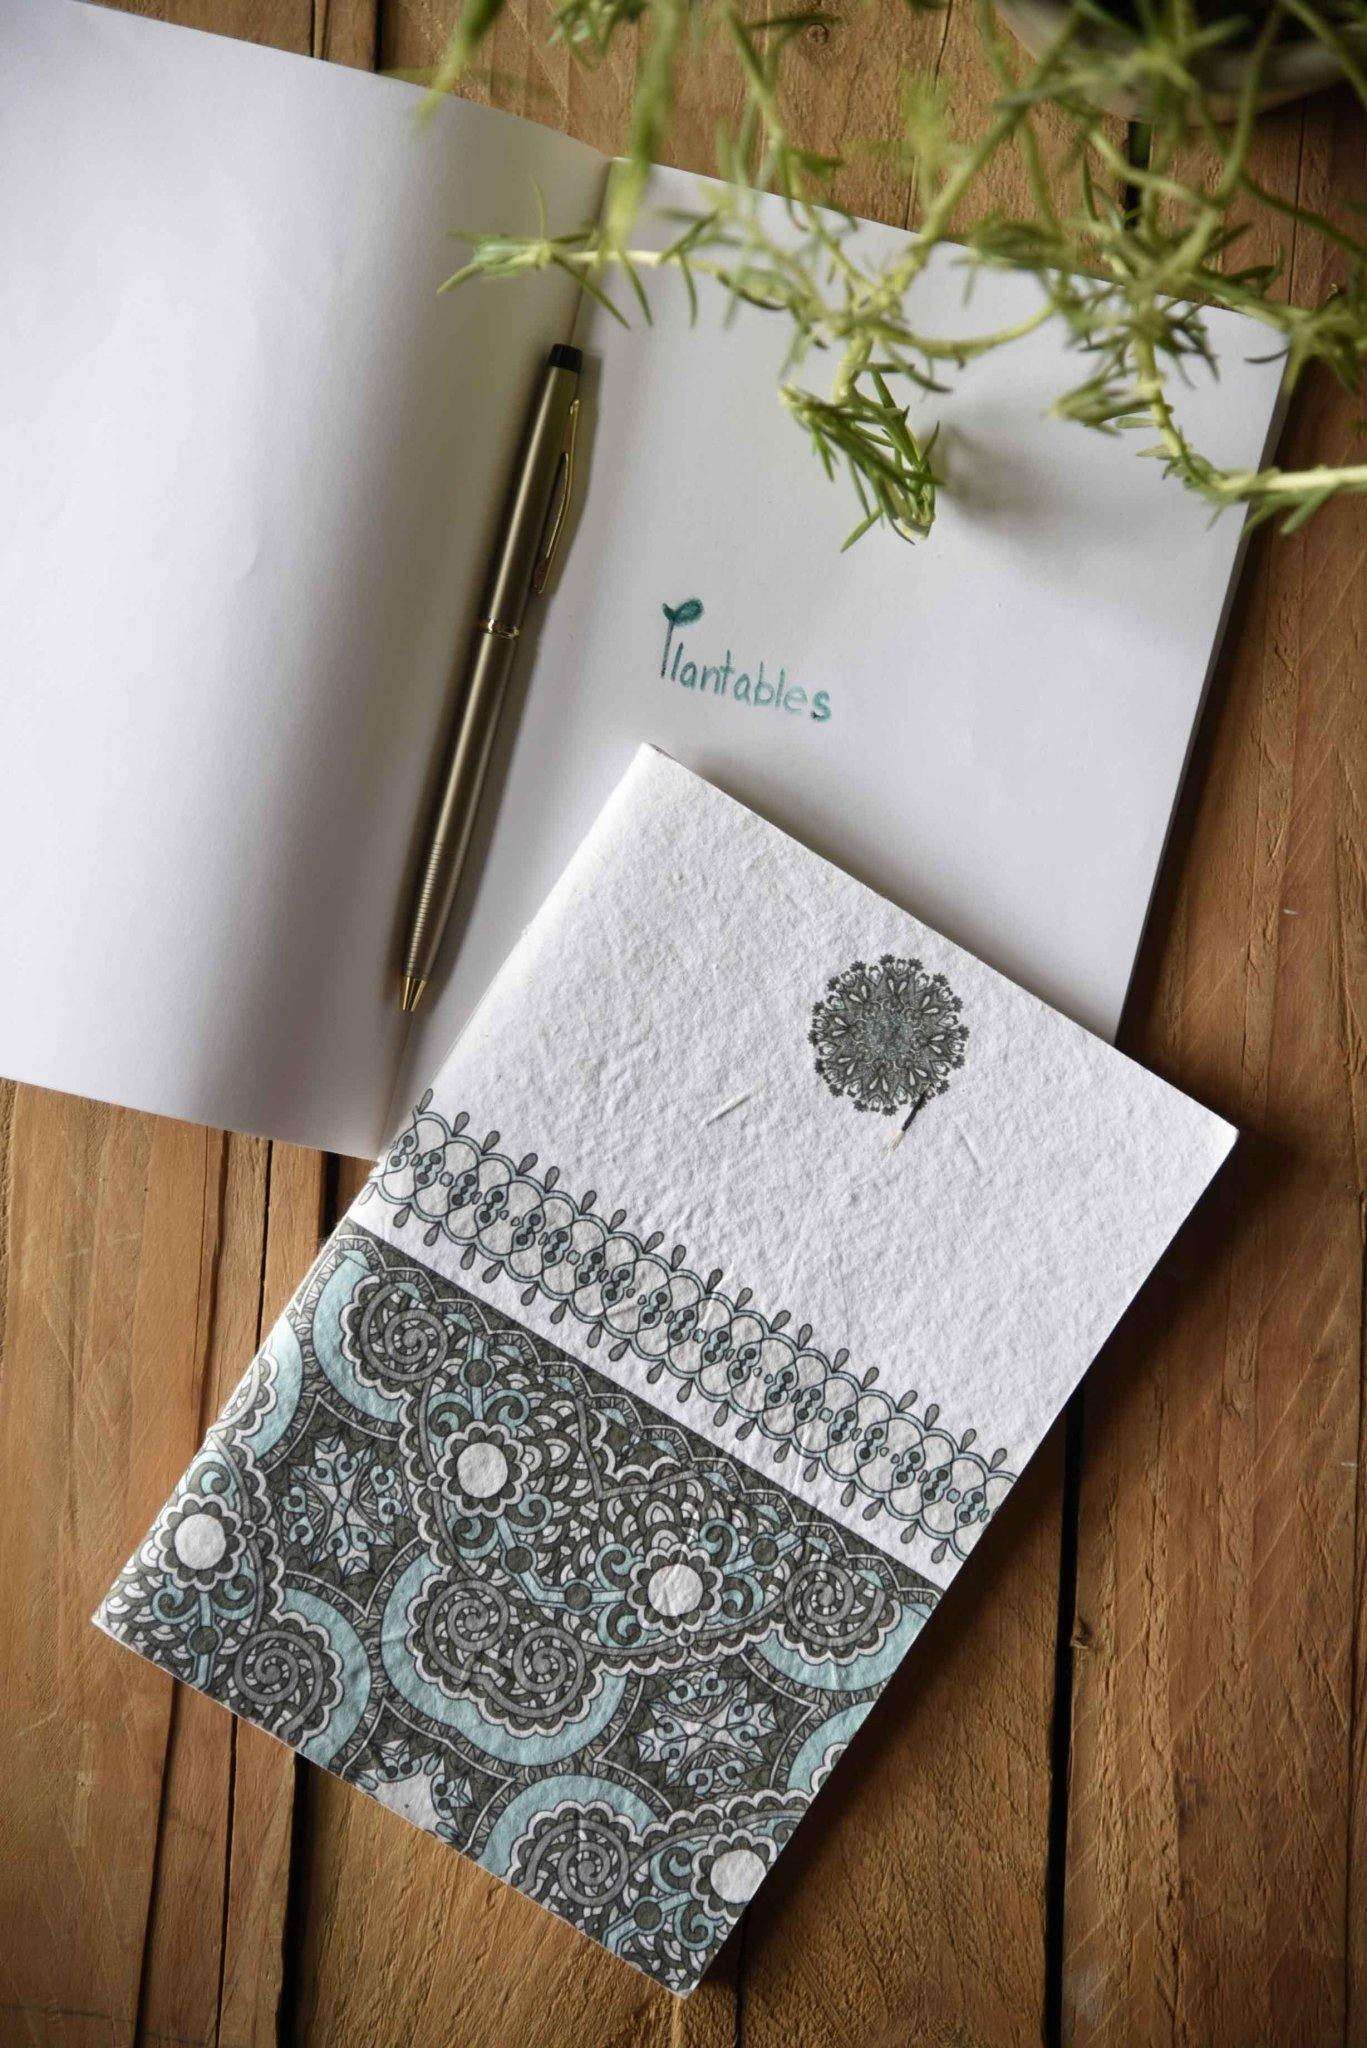 Blue Indian Motif Seed Paper Cover Notebook - Plantables